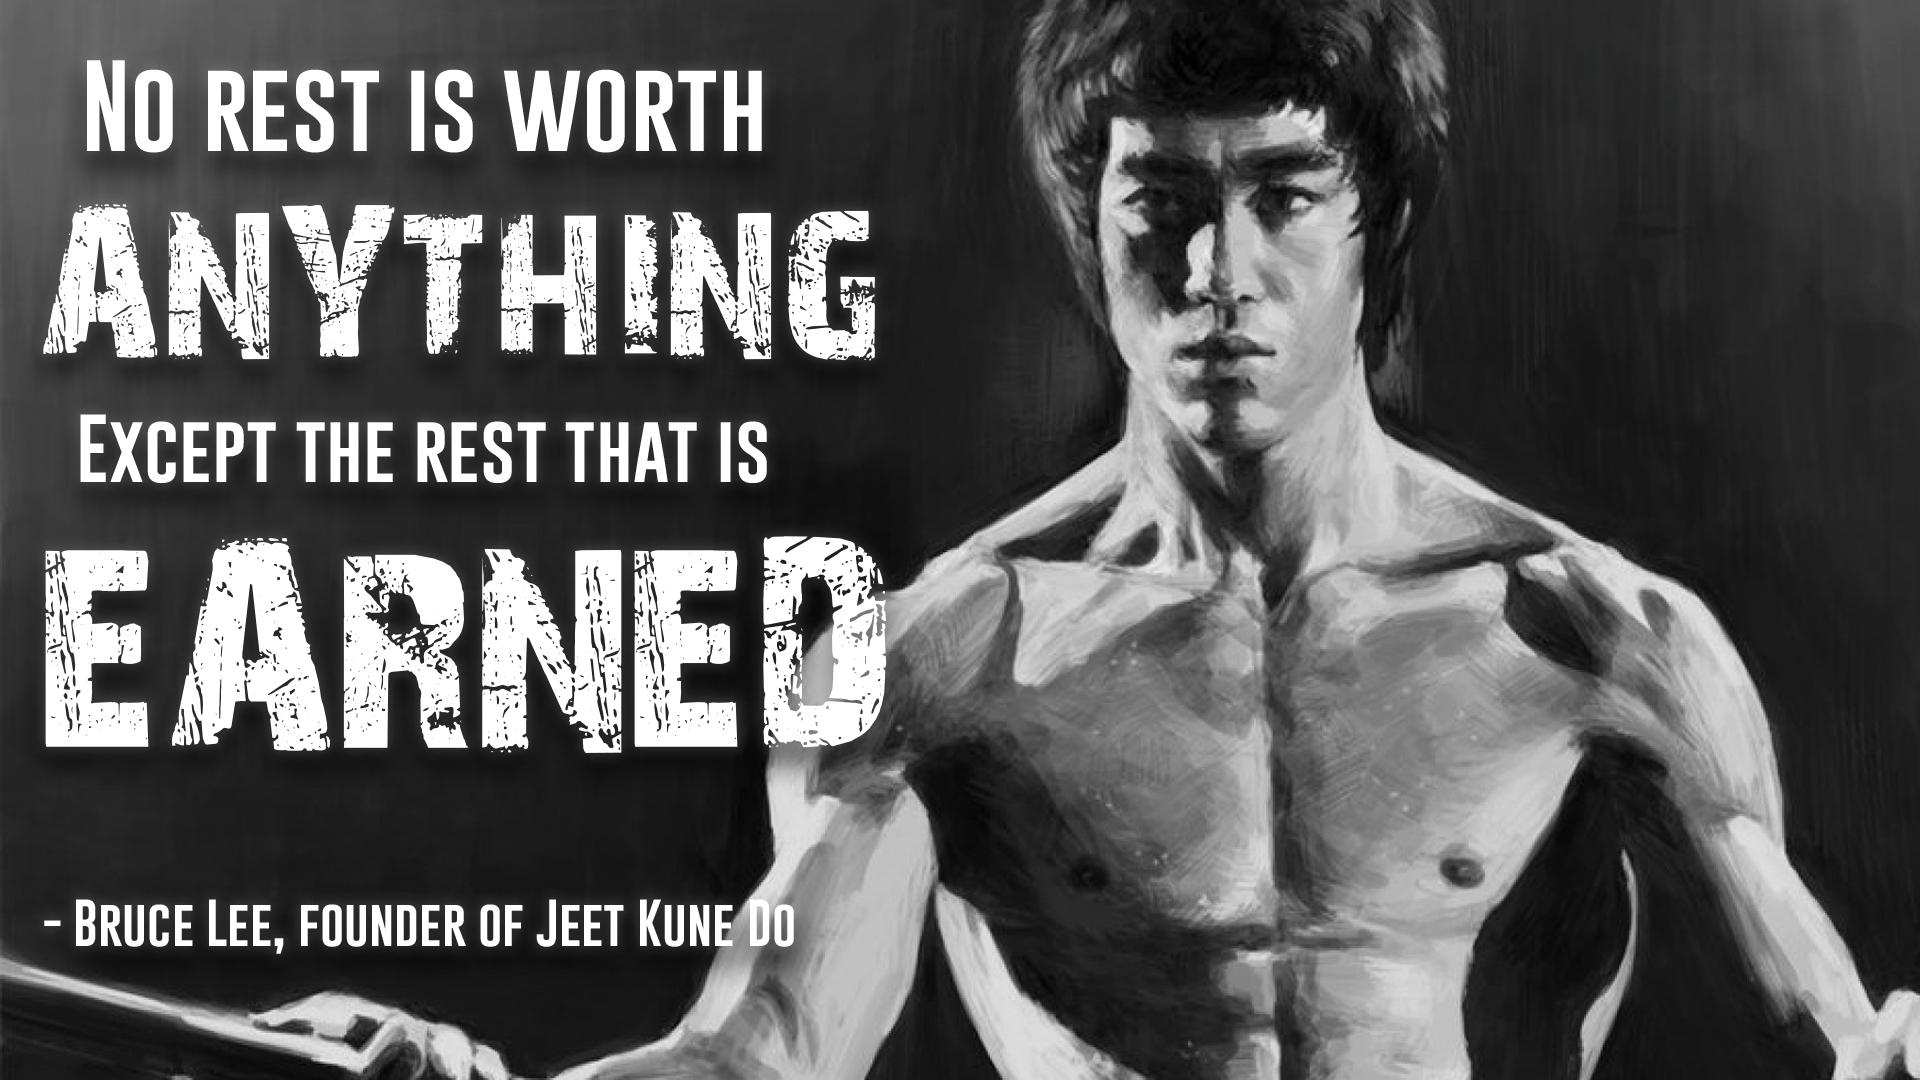 [Image] He was only 5'7″, 130 lbs. But he became one of the greatest martial artists of all time.